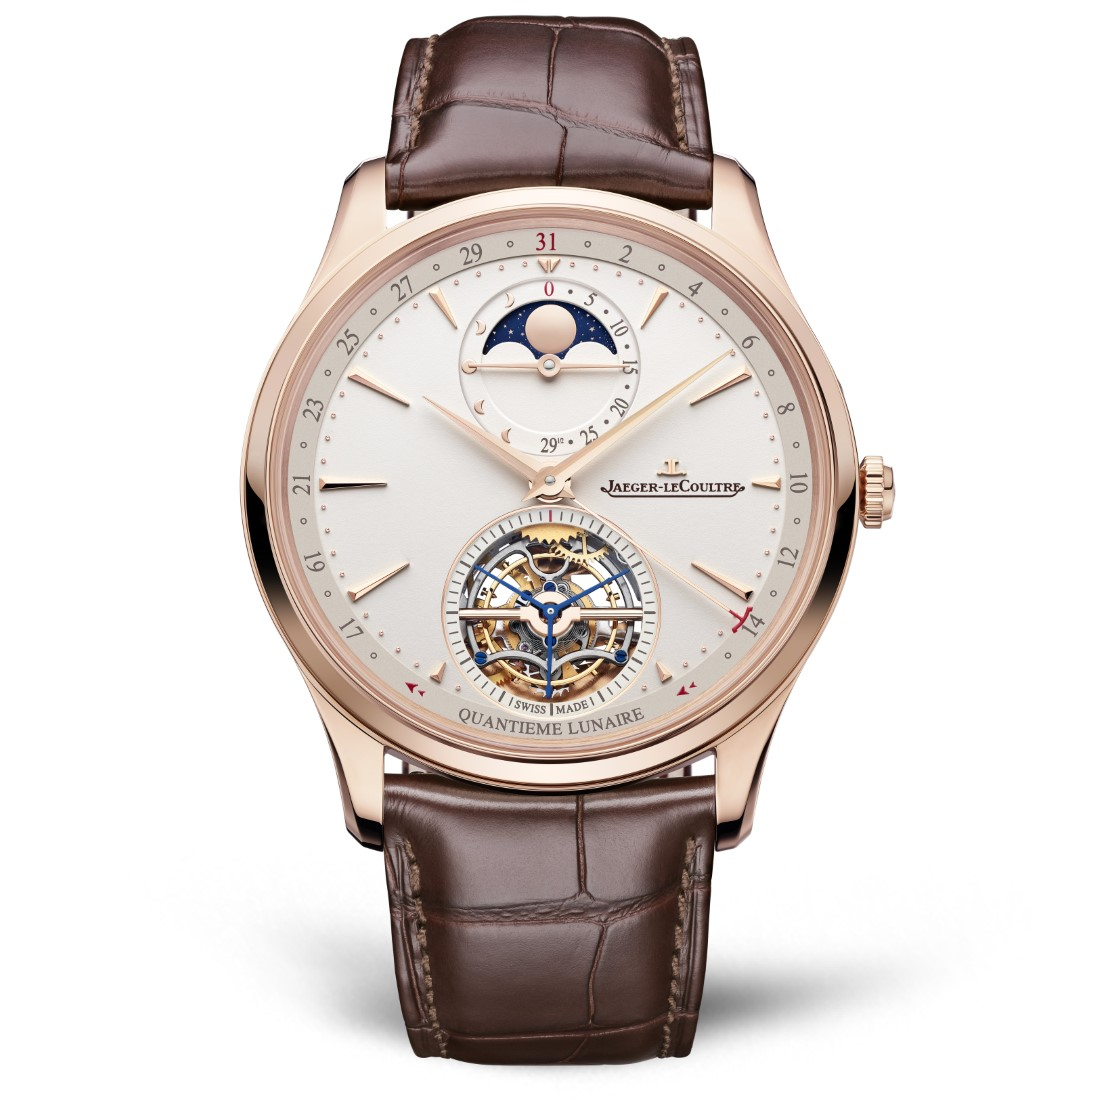 Jaeger-LeCoultre Master Ultra Thin Tourbillon Moon